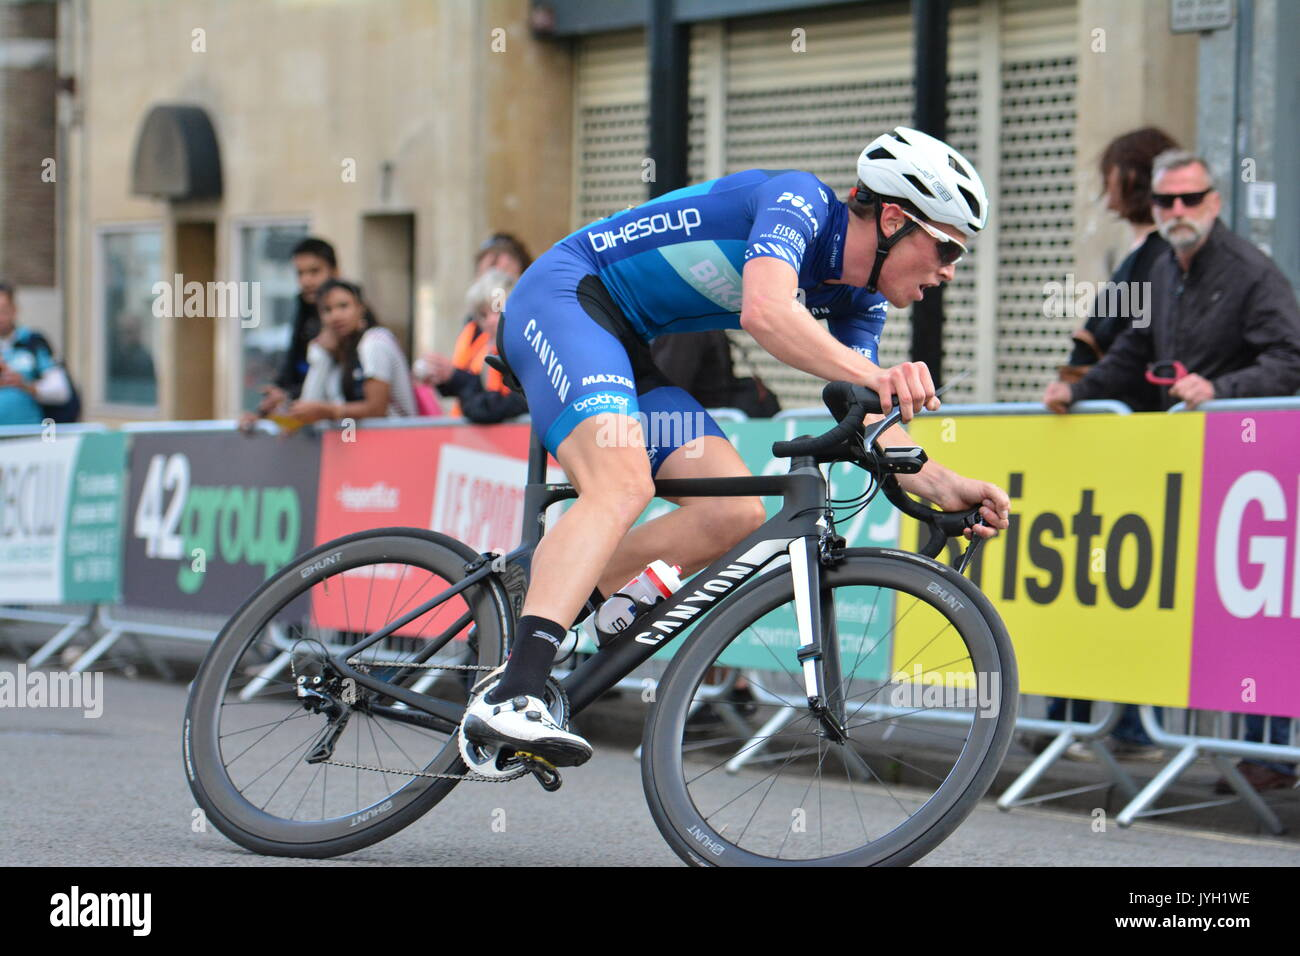 Bristol, UK. 19th Aug, 2017. Caution: EDITORIAL USE ONLY. Bristol GP cycle race around the streets of Bristol. Images show the final race of the day, Men's Elite Final. The teams lay everything on the line to take the Bristol Grand Prix Win. 1st Rory Townsend, 2nd Fred Scheska Exeter Uni, 3rd Josh Price. Credit: Robert Timoney/Alamy Live News - Stock Image